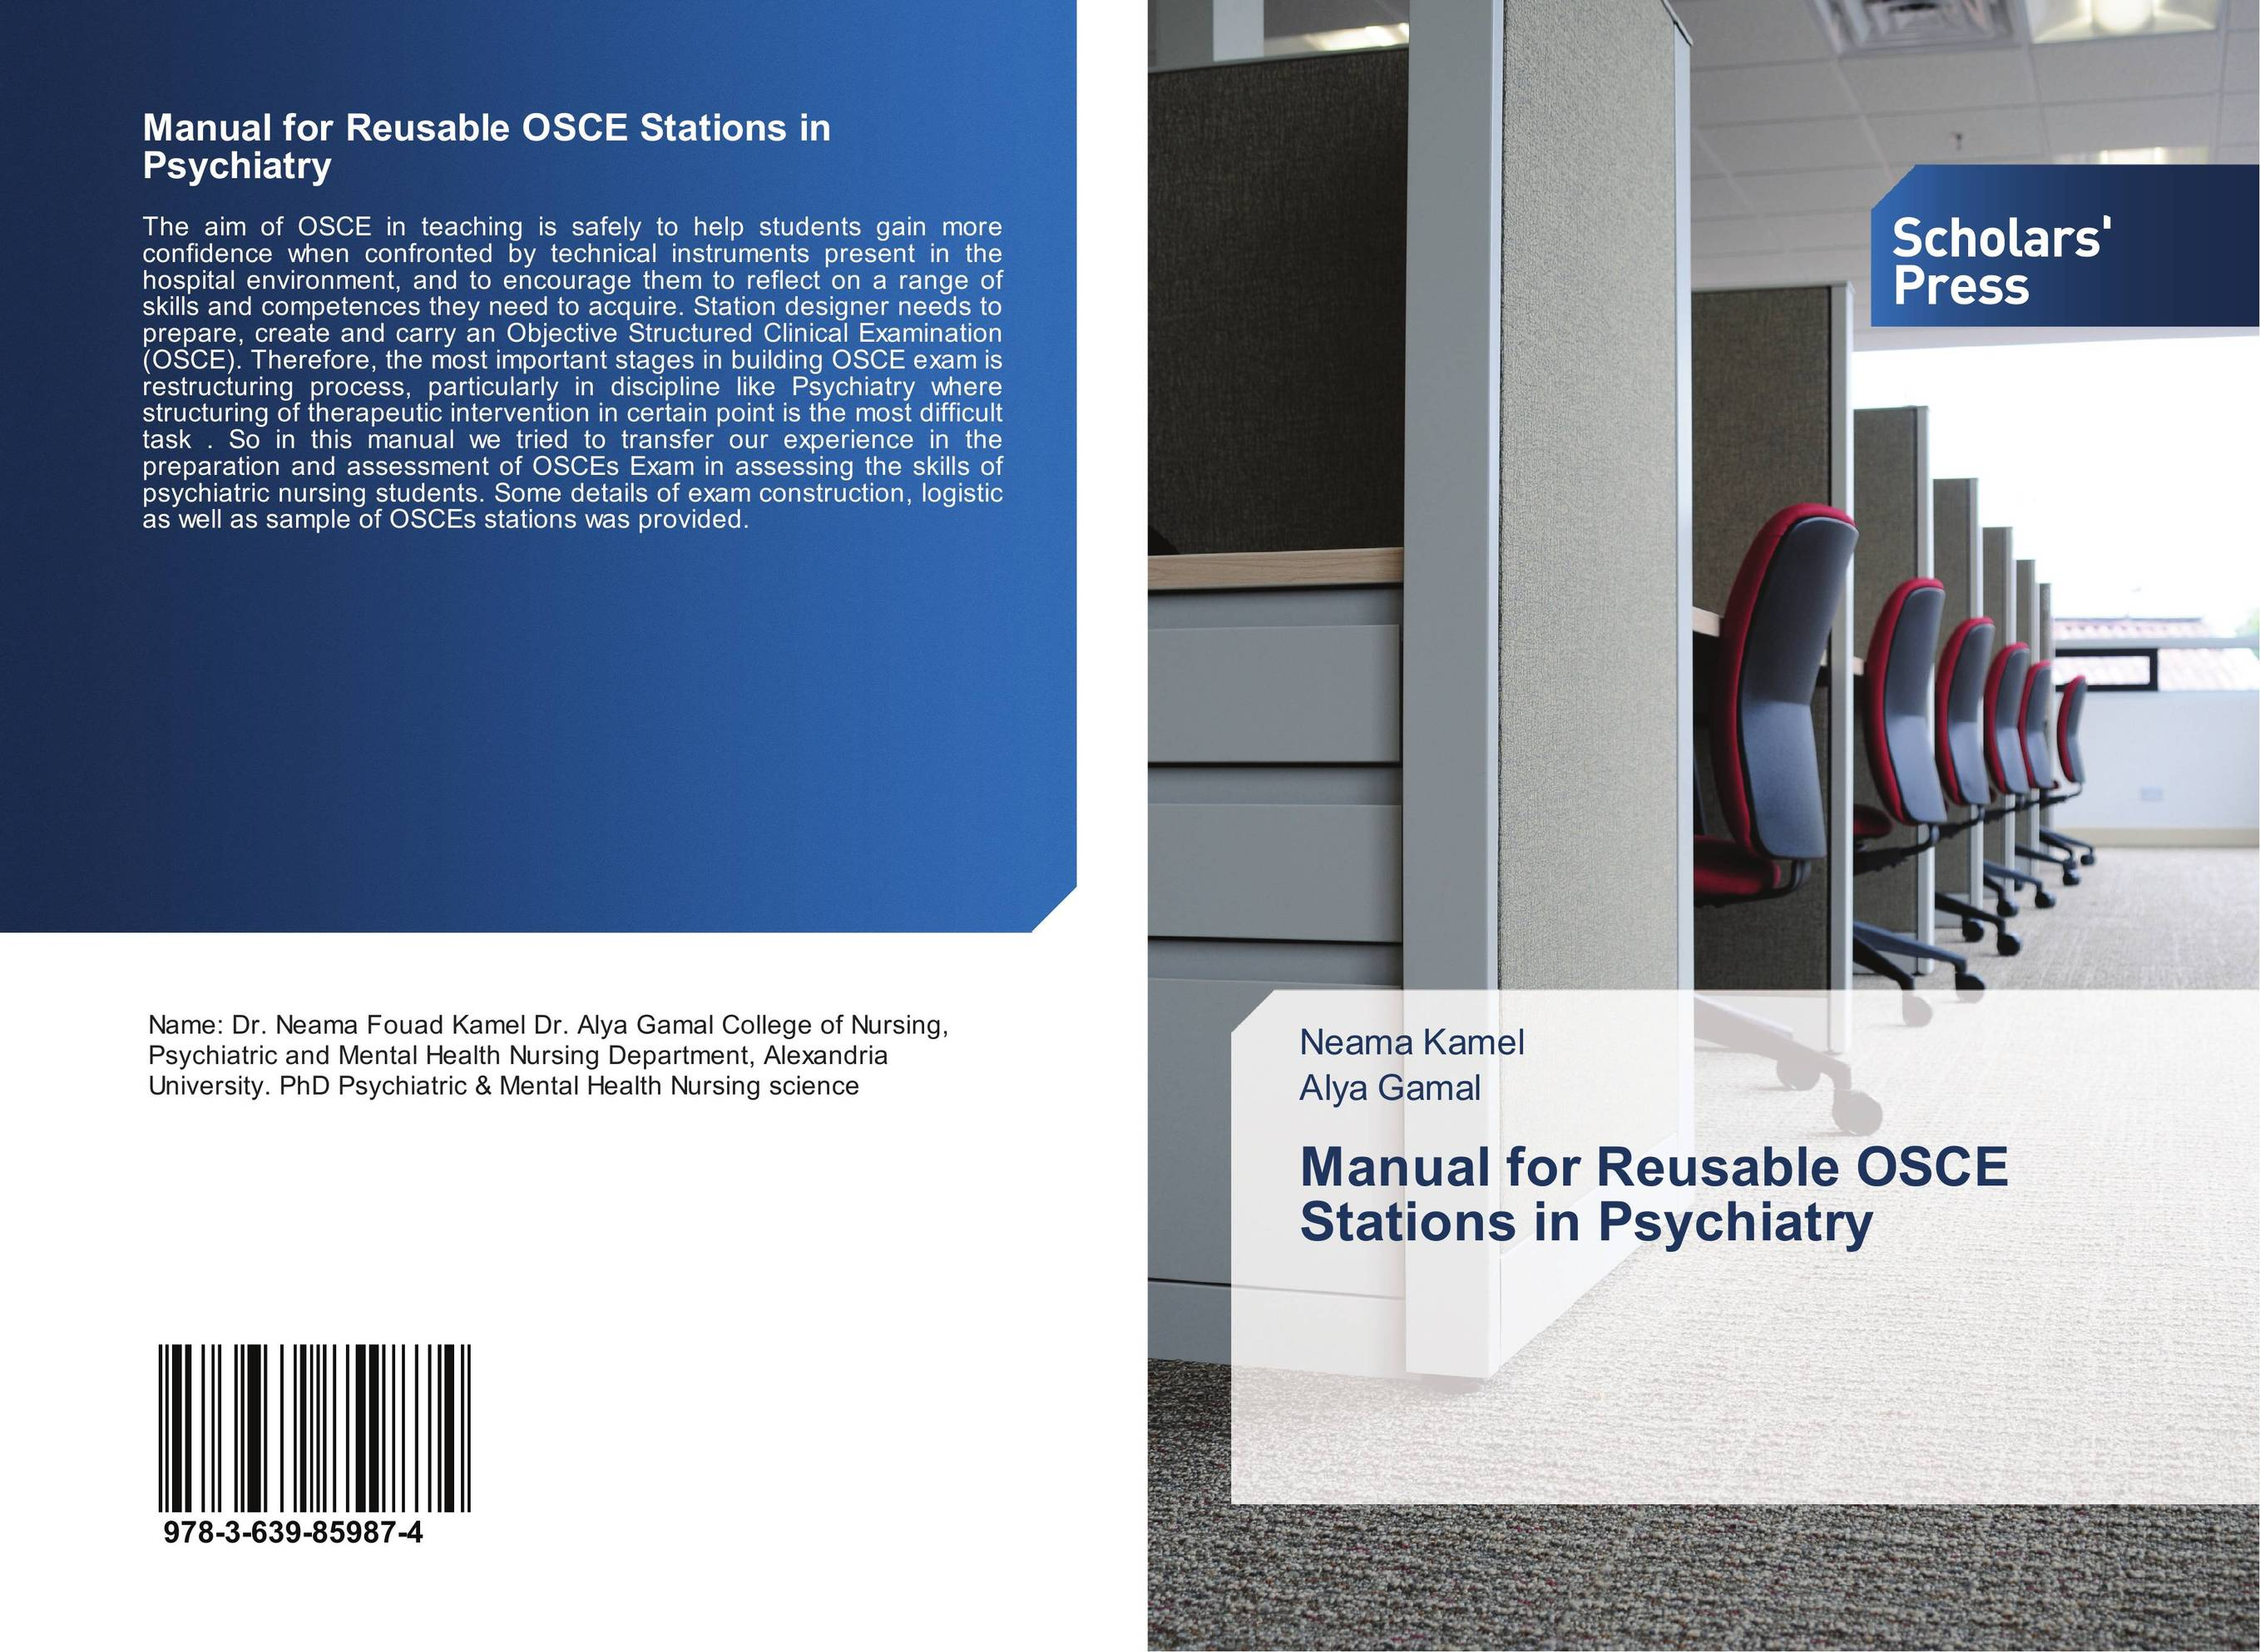 Manual for Reusable OSCE Stations in Psychiatry psychiatric disorders in postpartum period